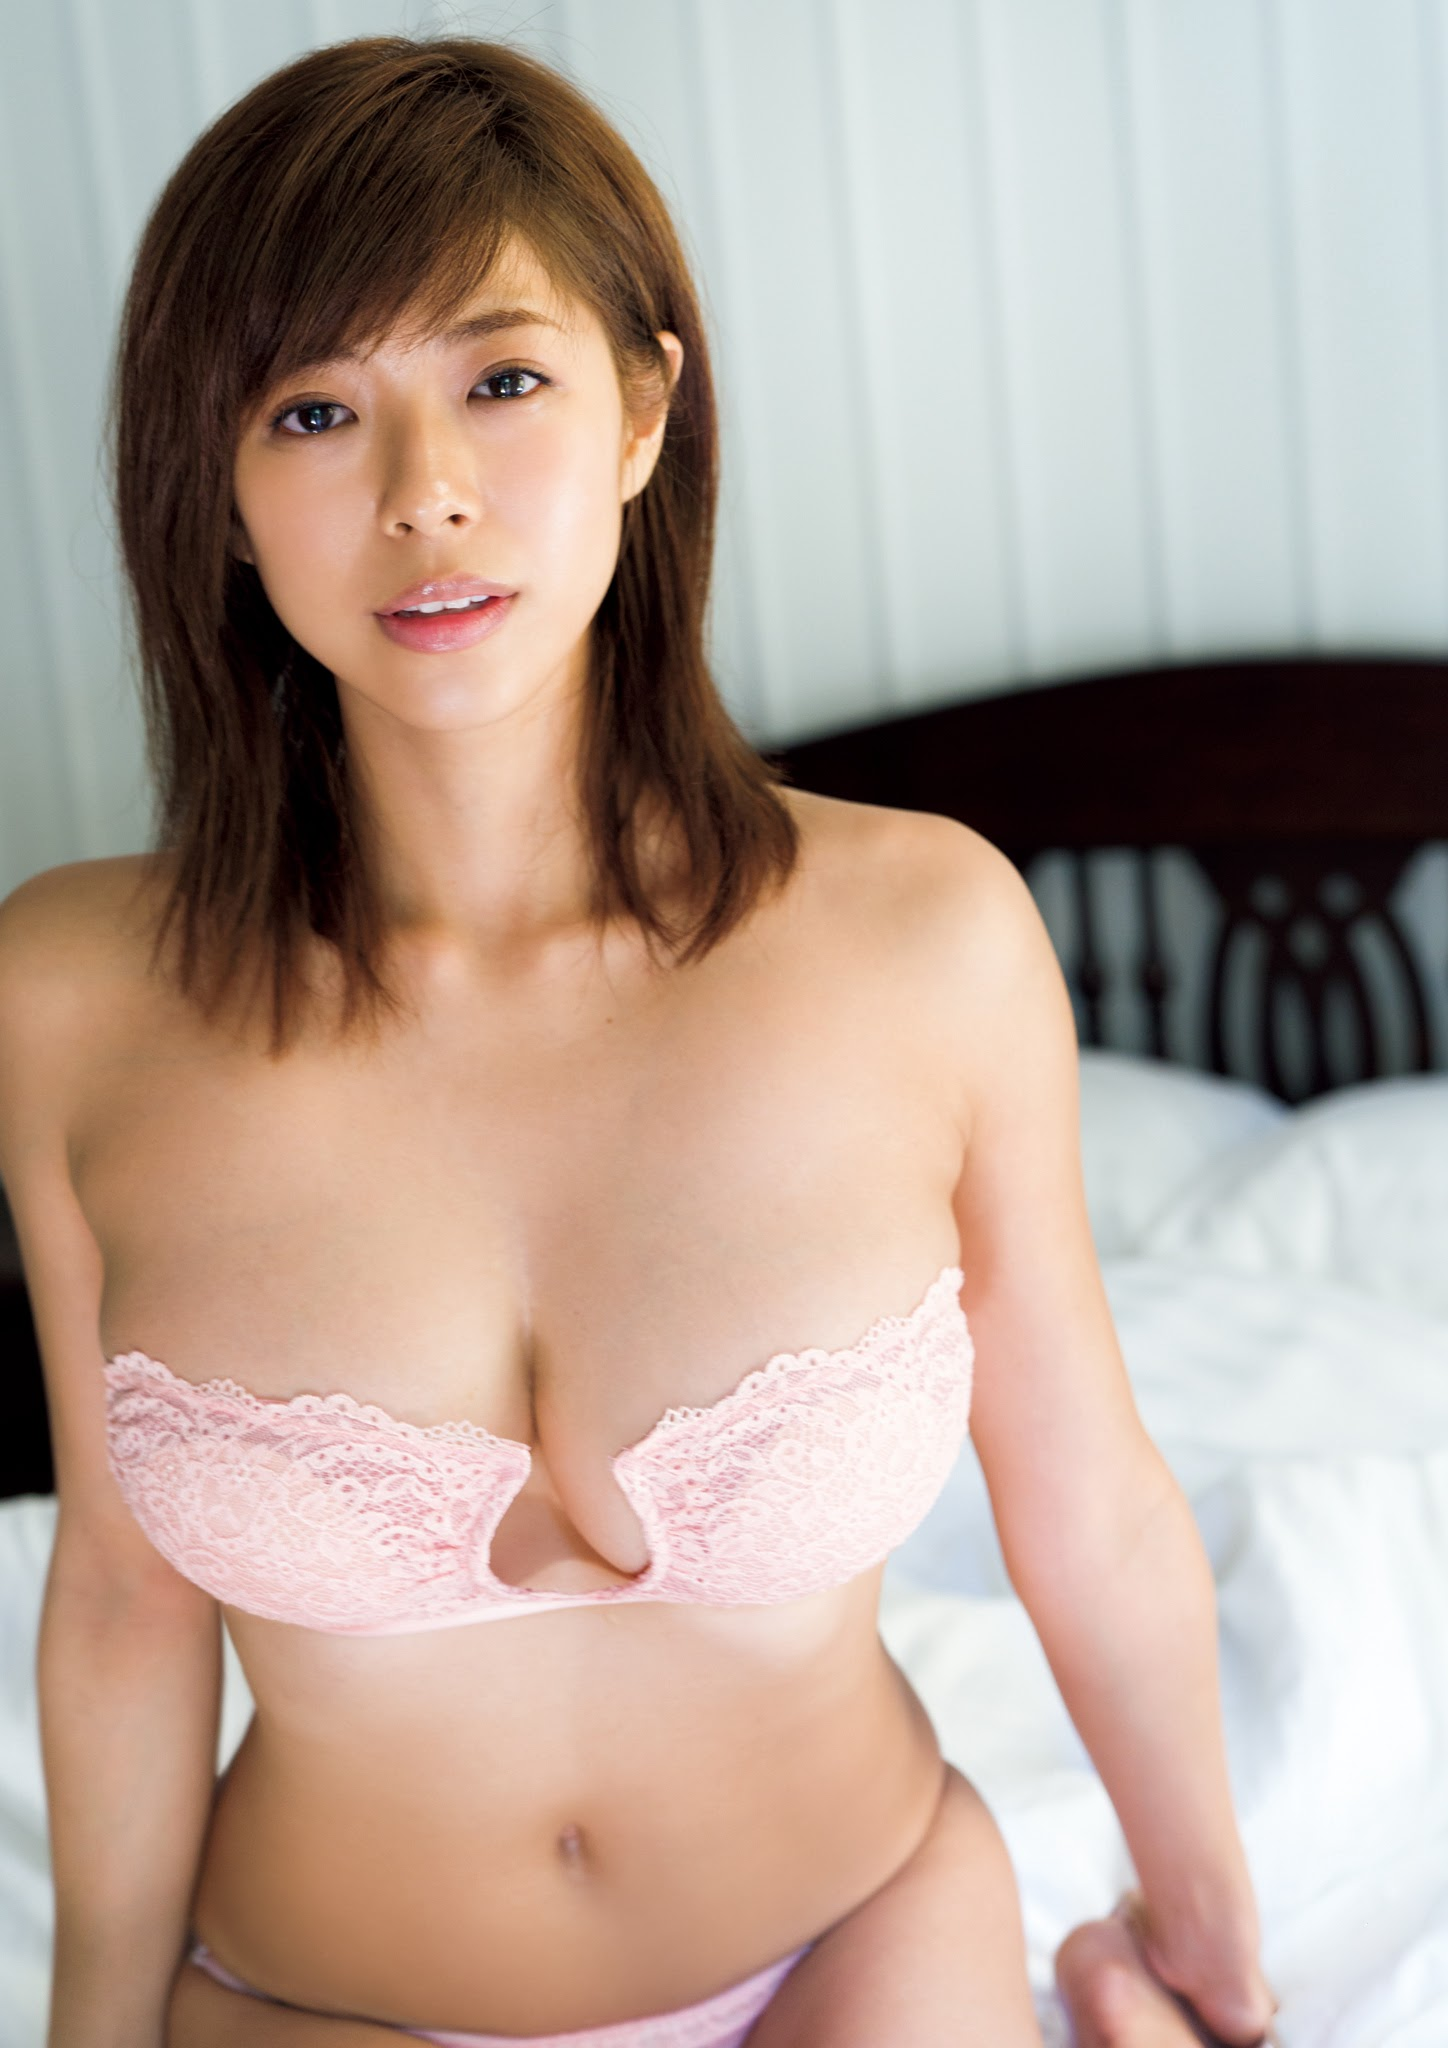 Super body of H cup Minami Wachi 2020 that exposes body and mind in tropical Thailand101